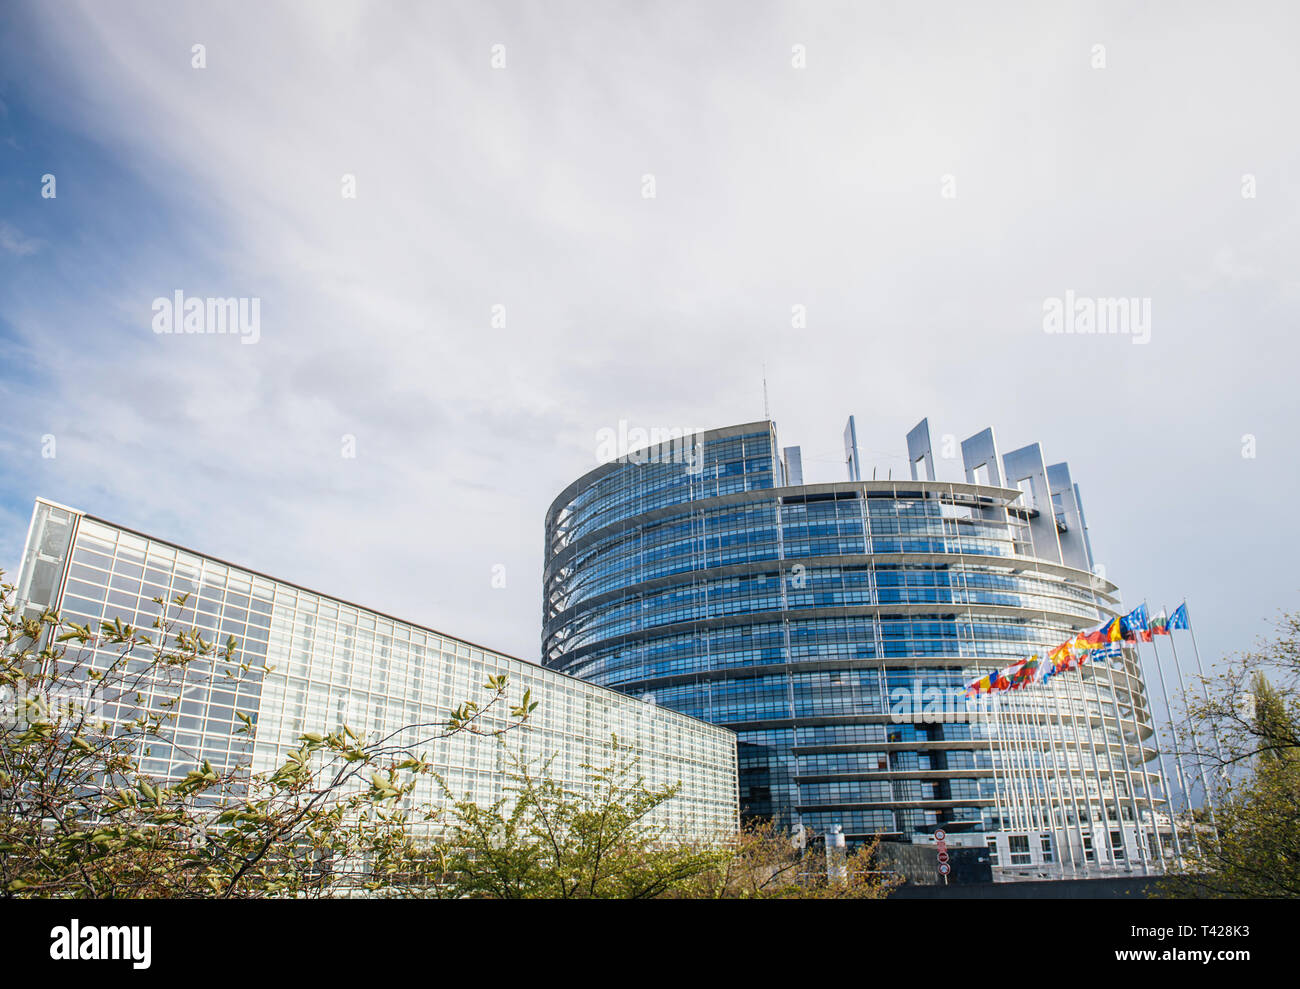 European Parliament building with all member states flags waving useful image for business articles, Brexit, Frexit, Grexit - Stock Image